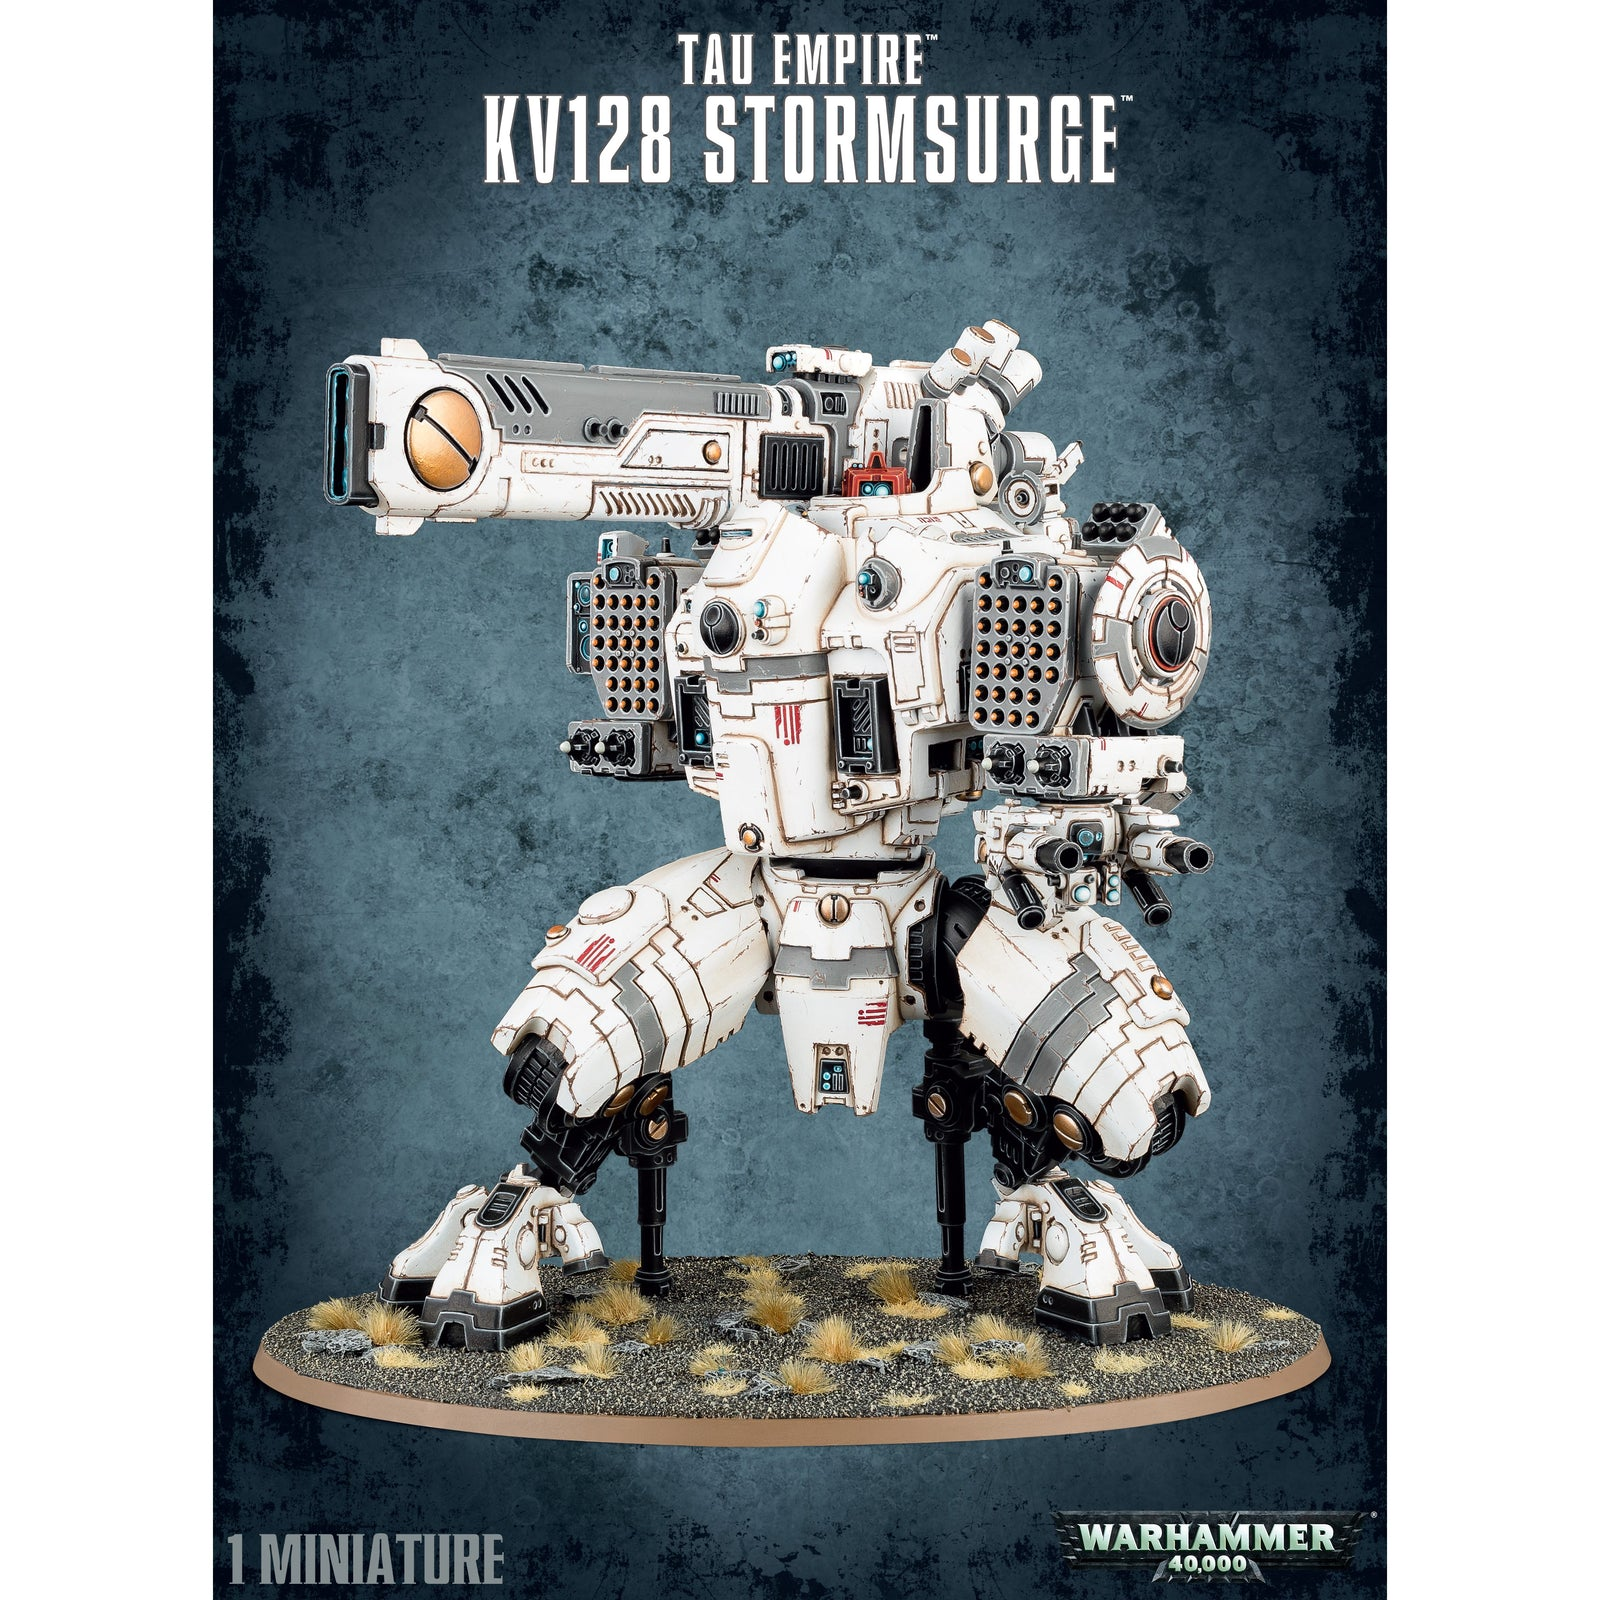 Box image for KV128 Stormsurge